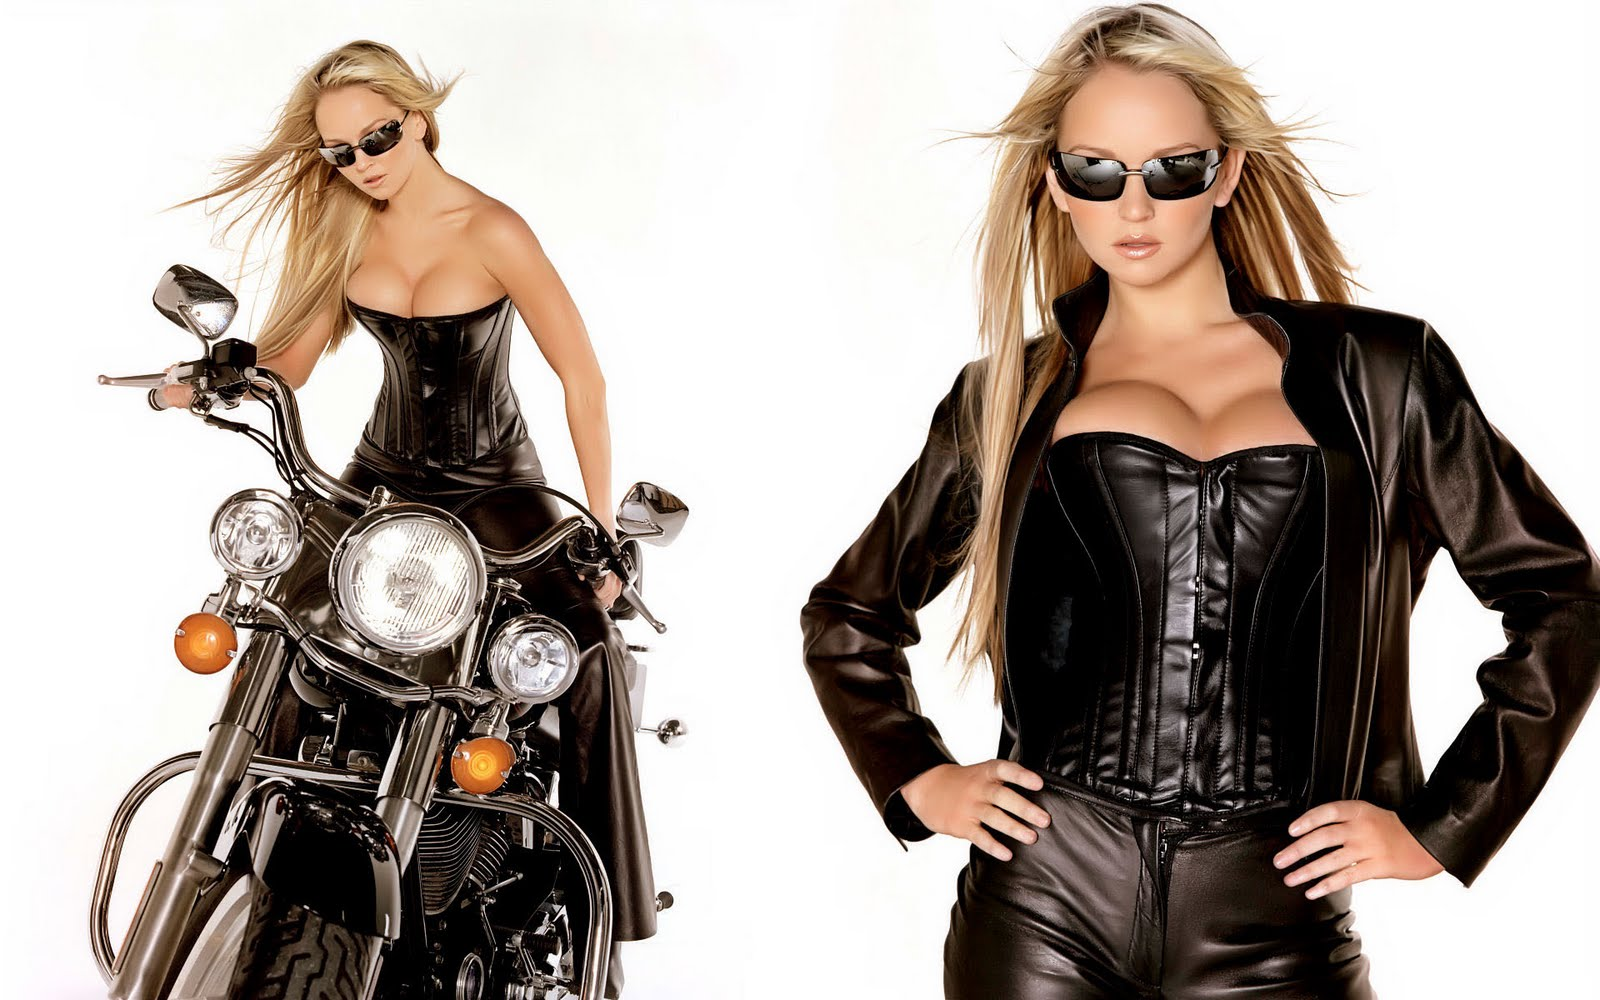 Jennifer-Ellison-With-harley-Davidson-HQ-Walpapers